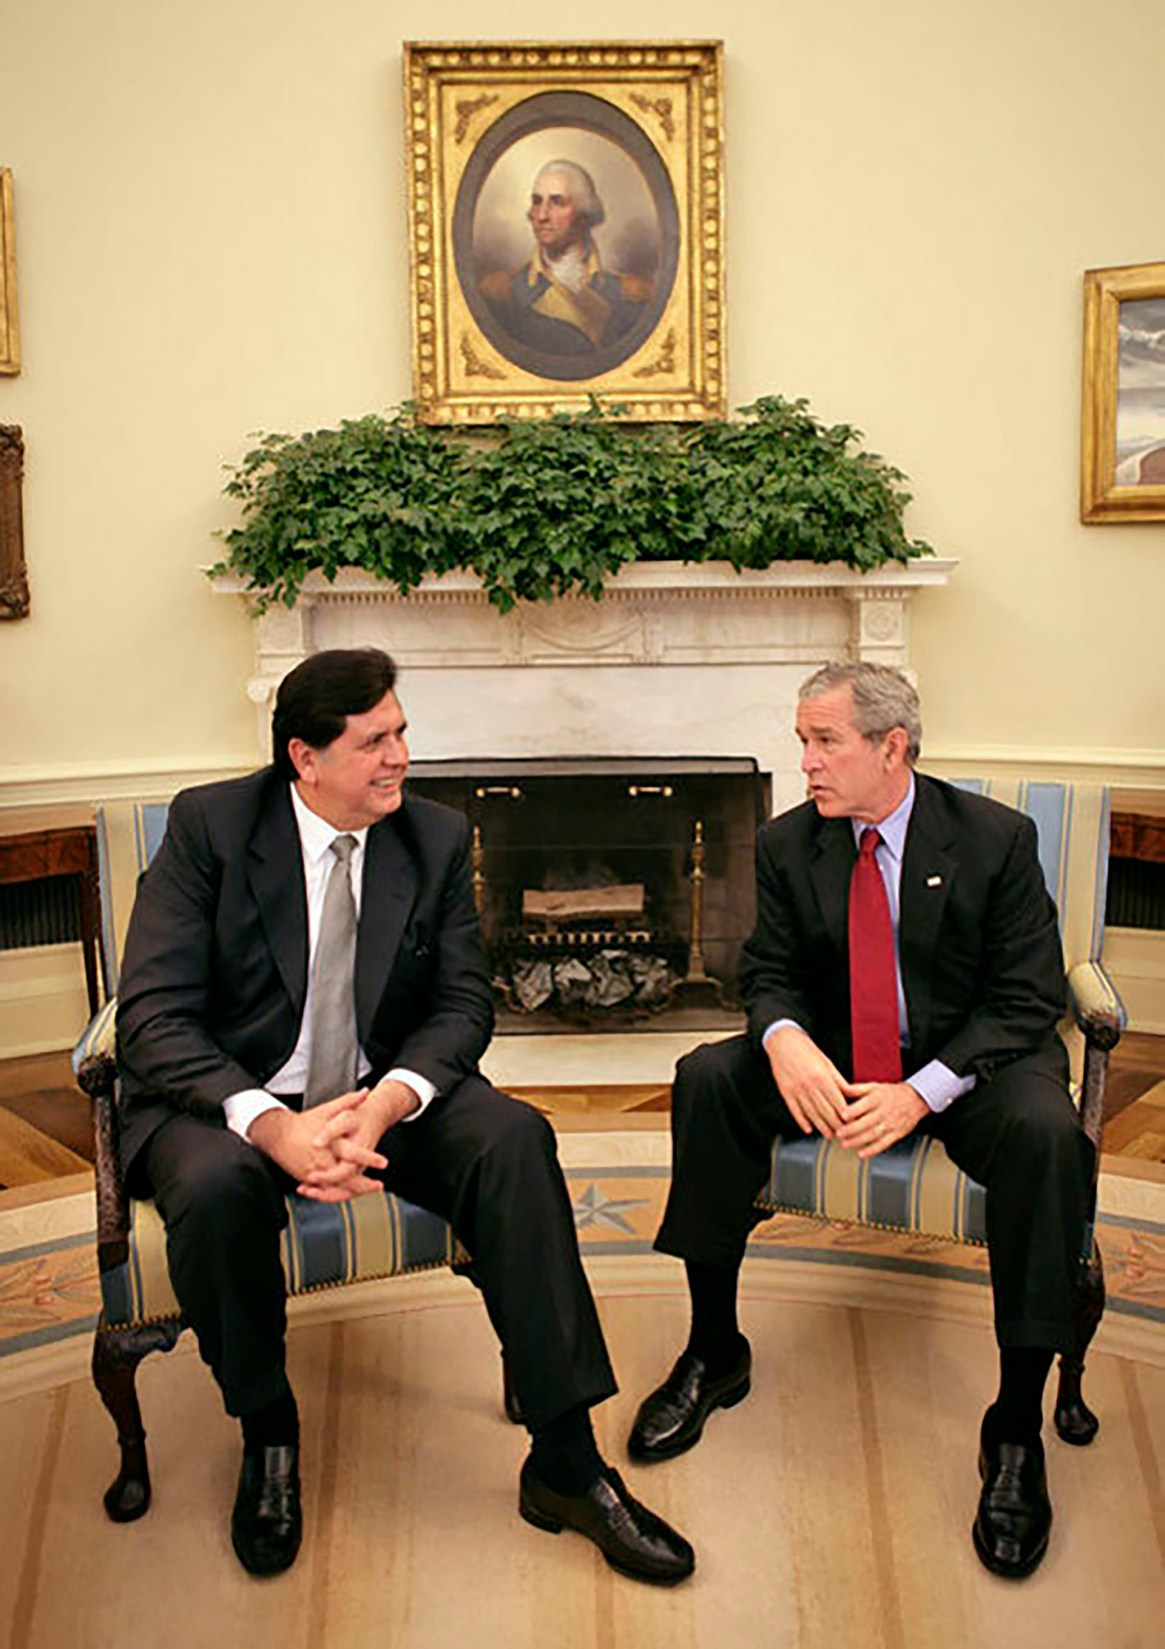 Alan García junto a su par estadounidense George W. Bush, durante su visita a Washington en 2006 (White House photo)